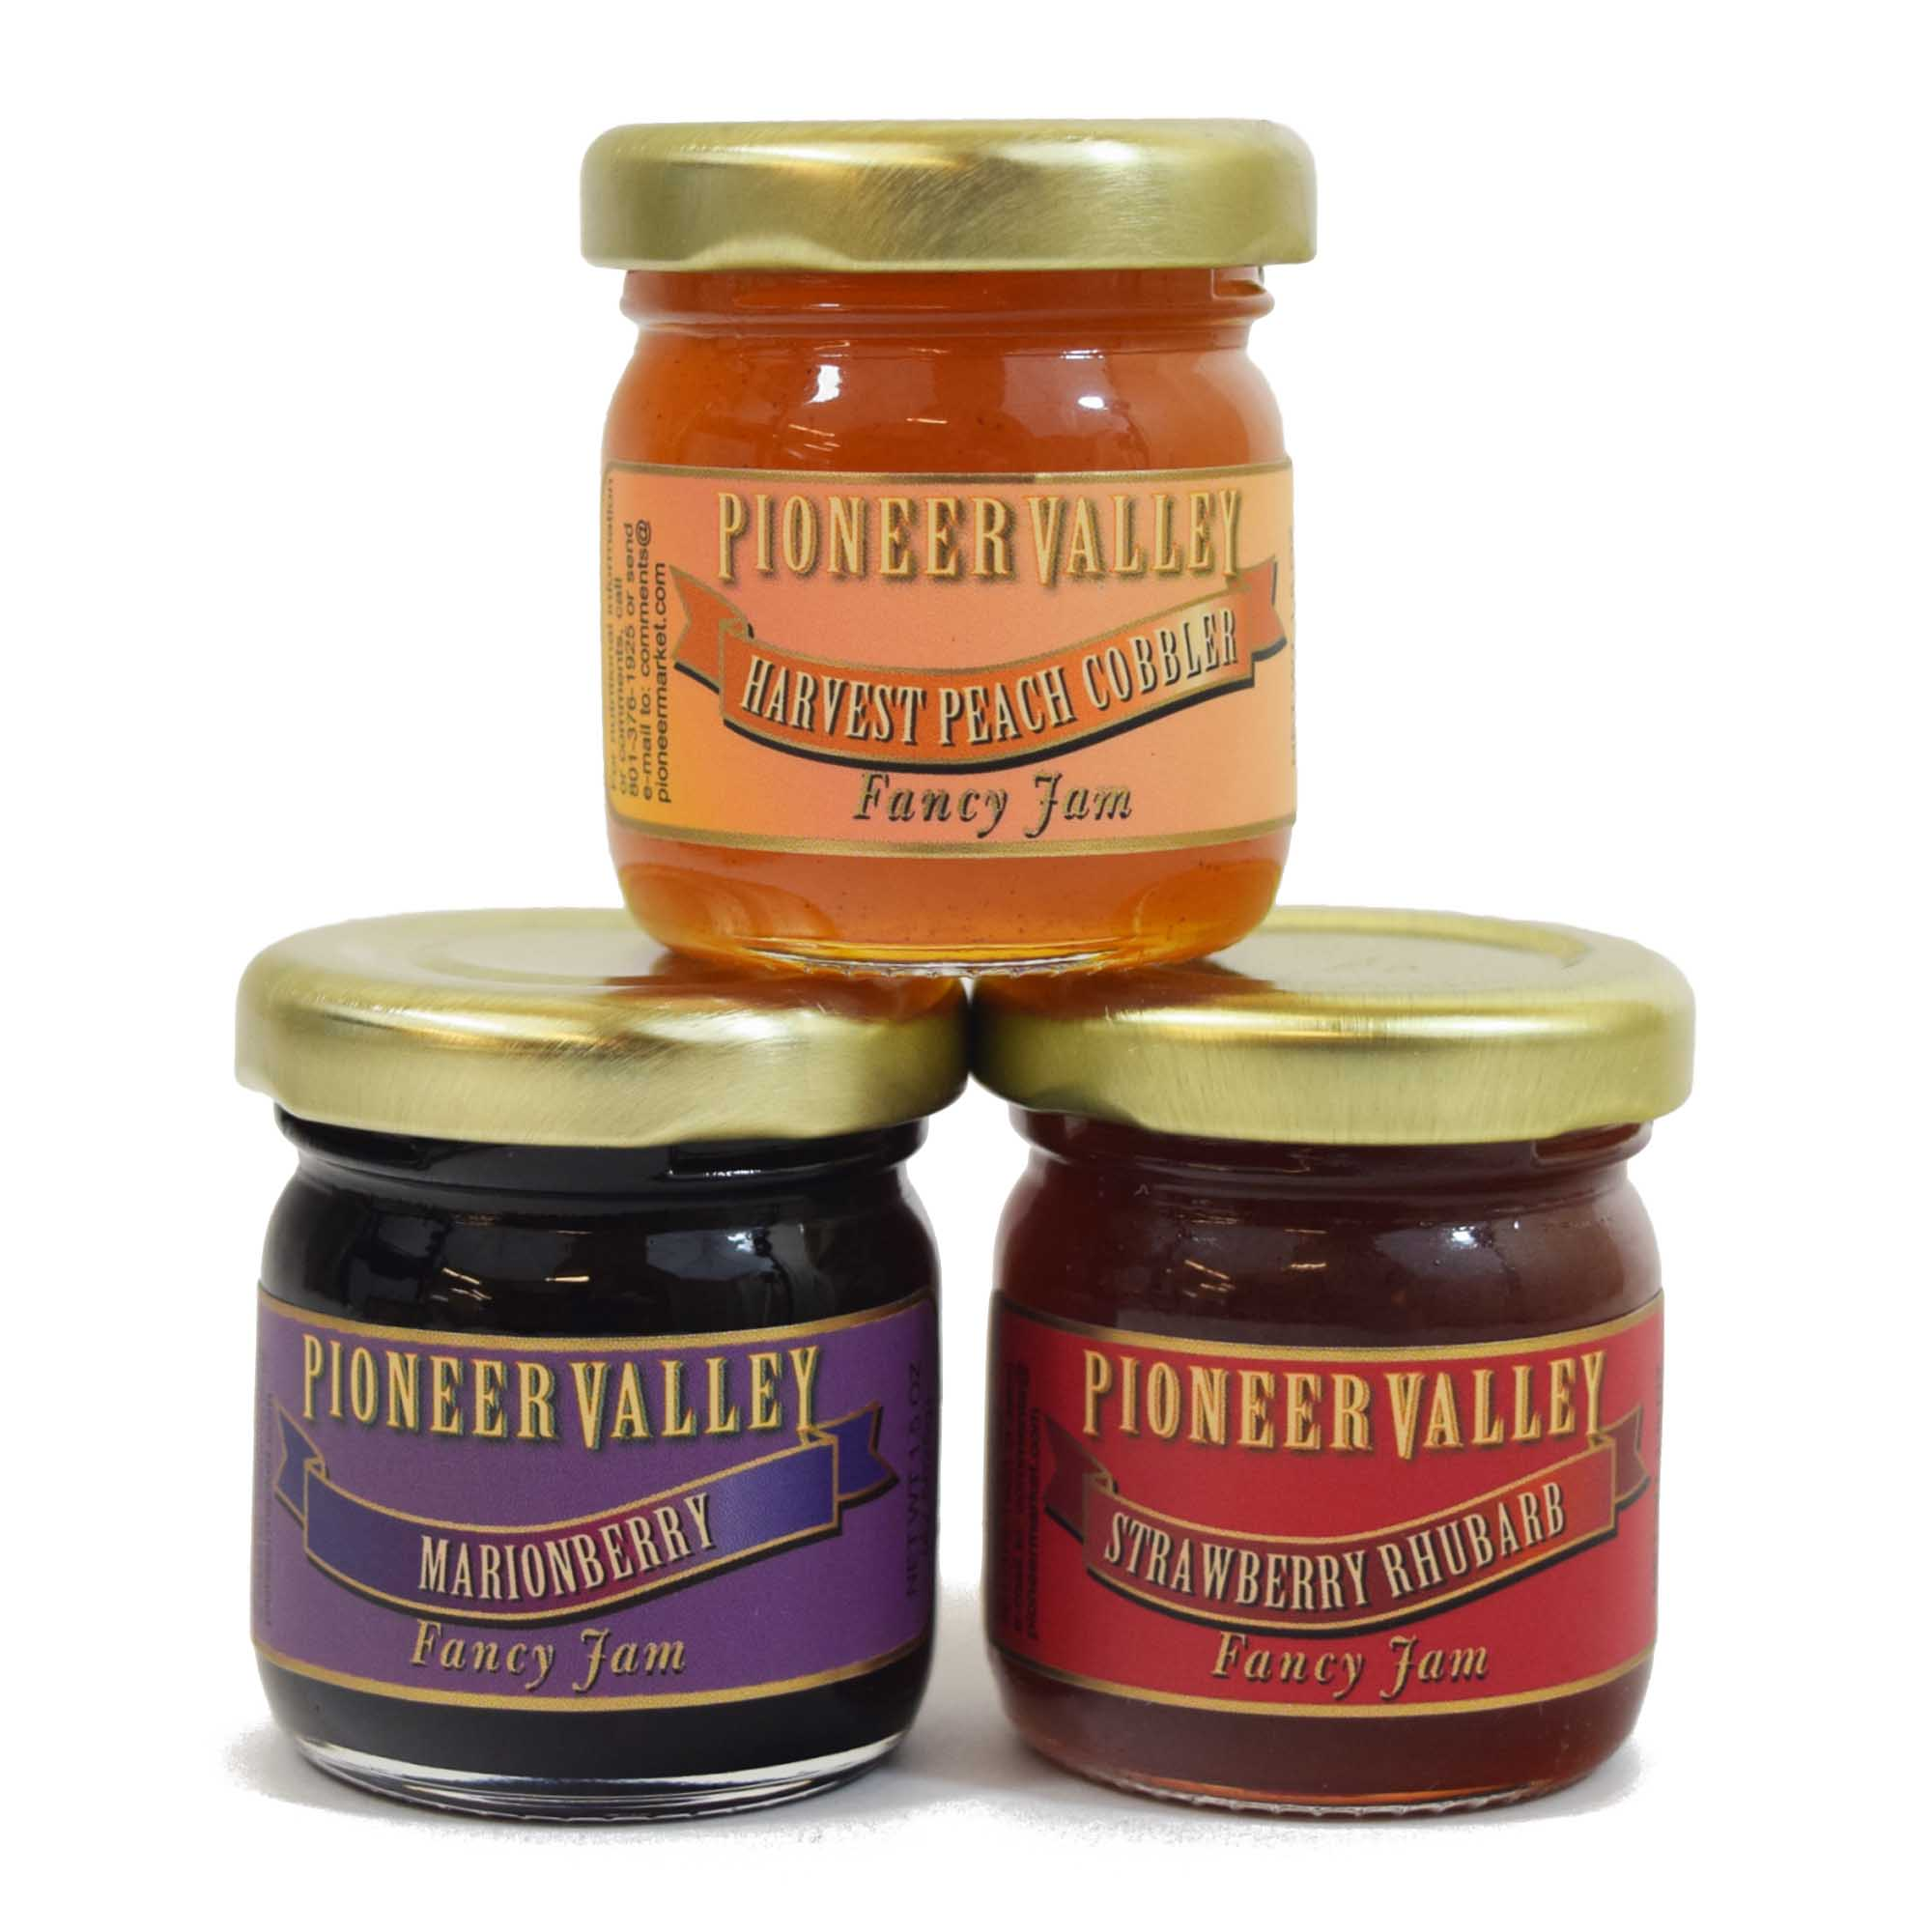 Mini Jam Gift Set 3-Pack - Harvest Peach Cobbler, Marionberry, Strawberry Rhubarb